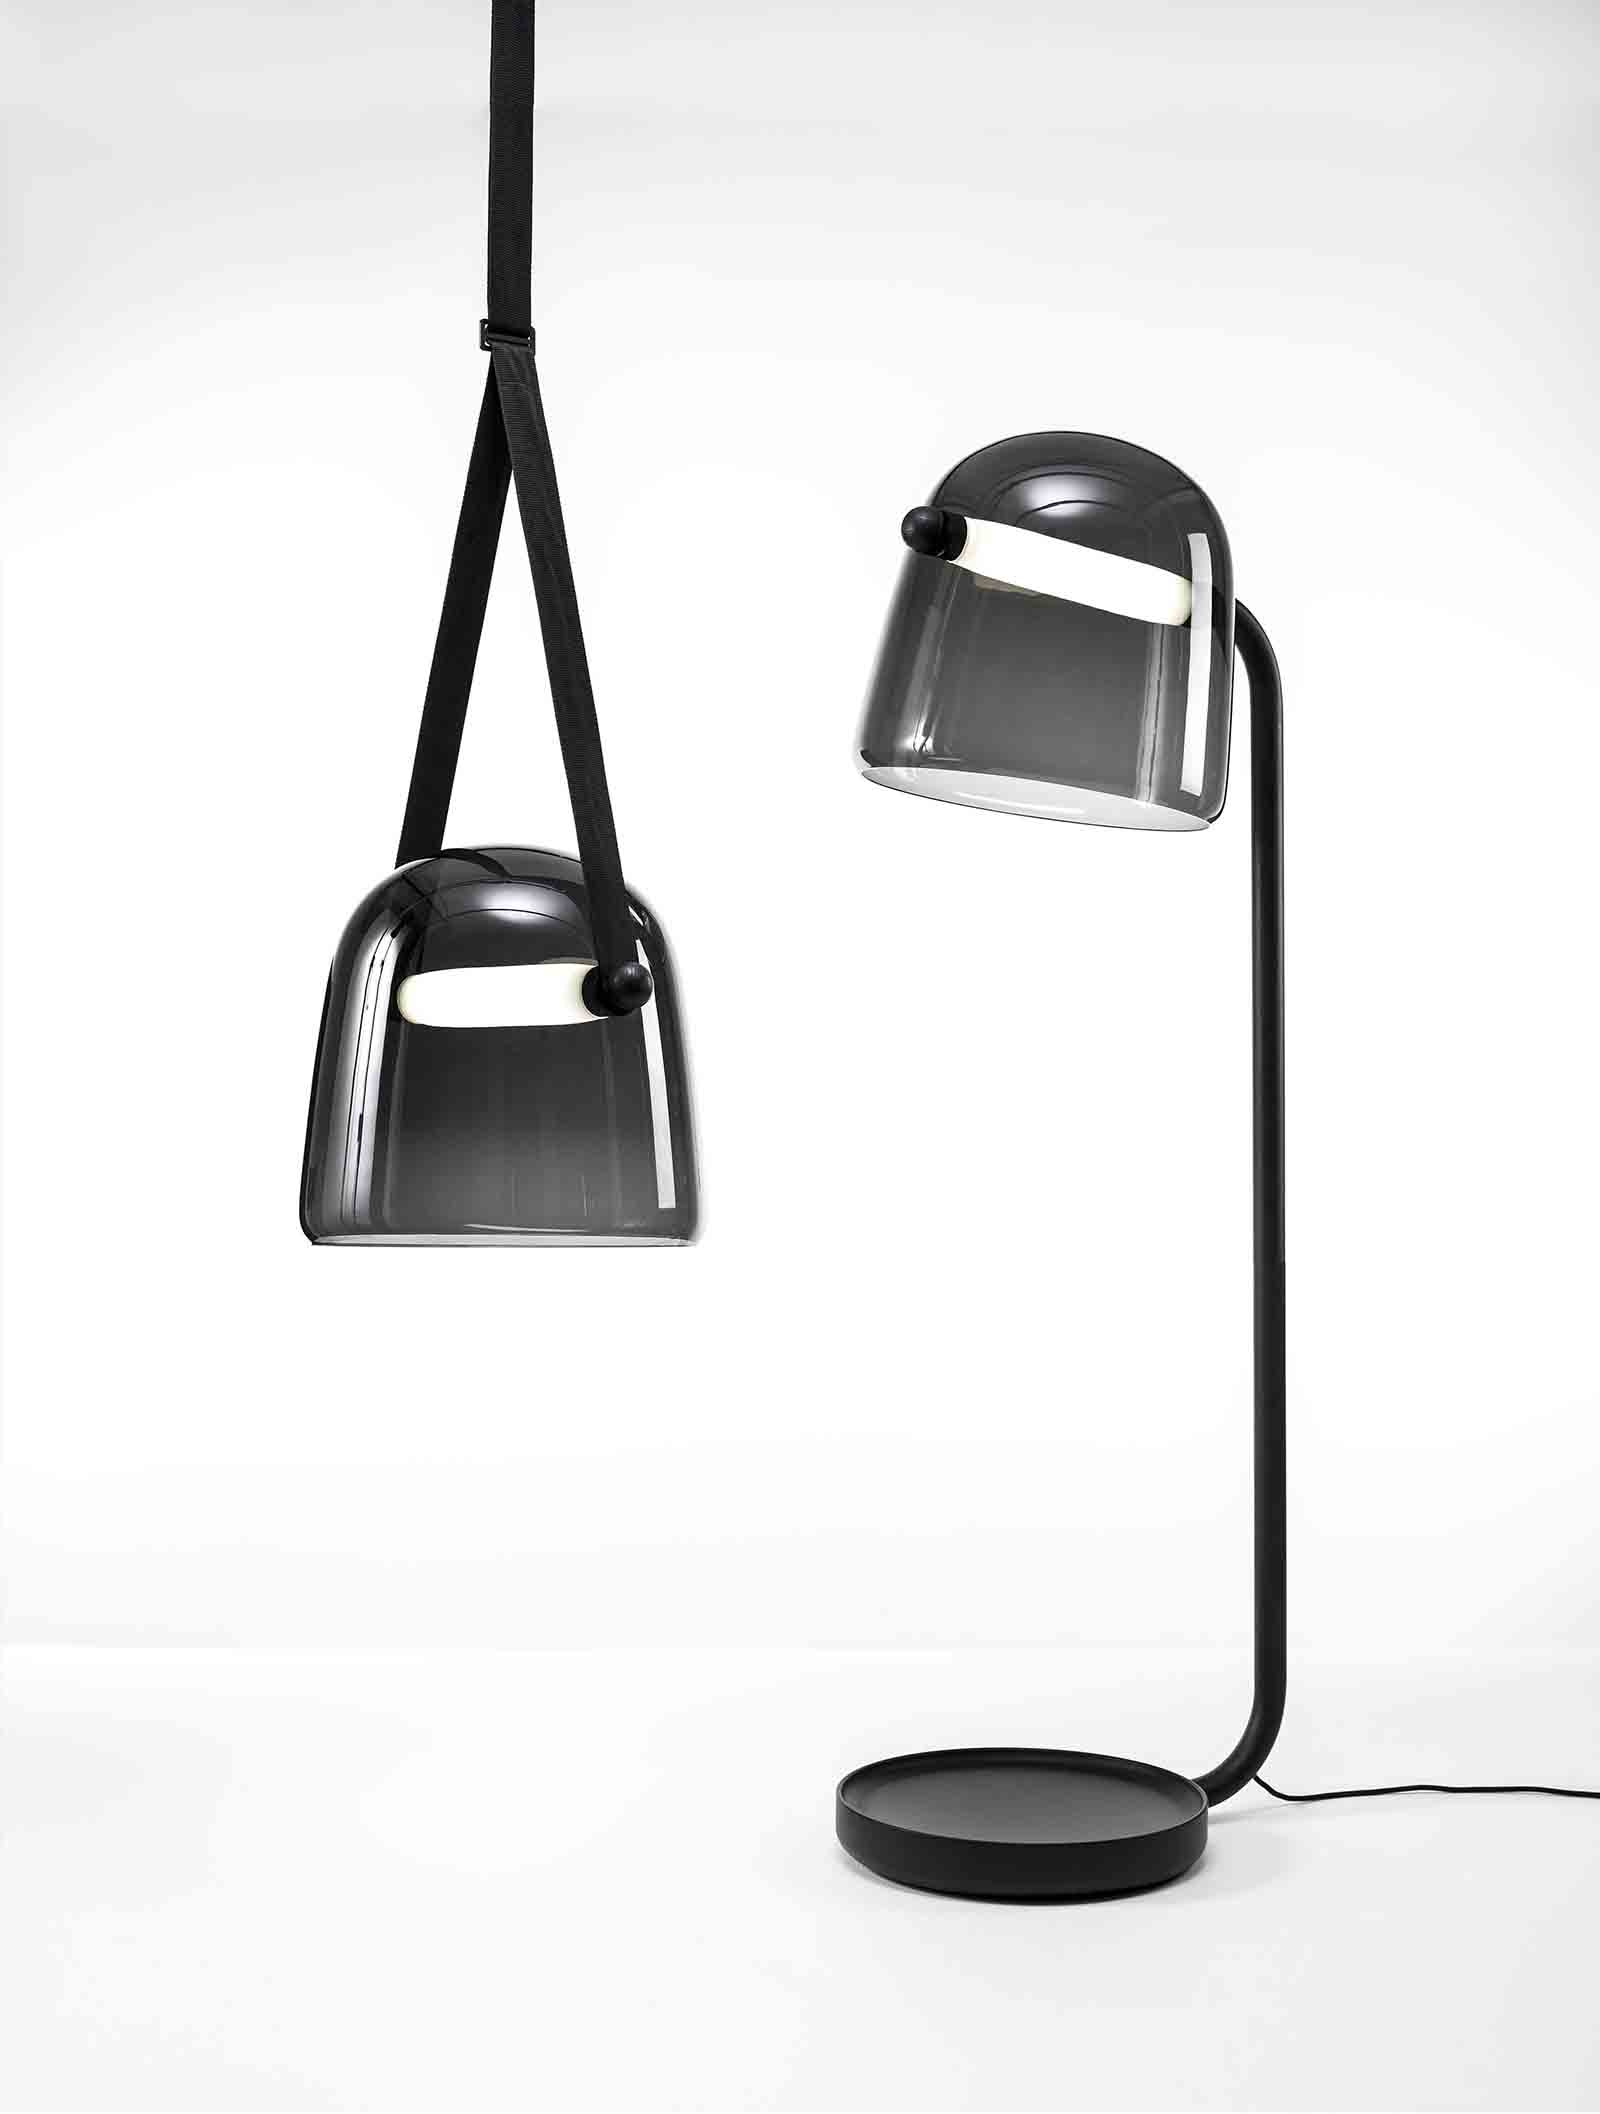 'Mona' pendant and floor lamps, designed by Lucie Koldova for Brokis